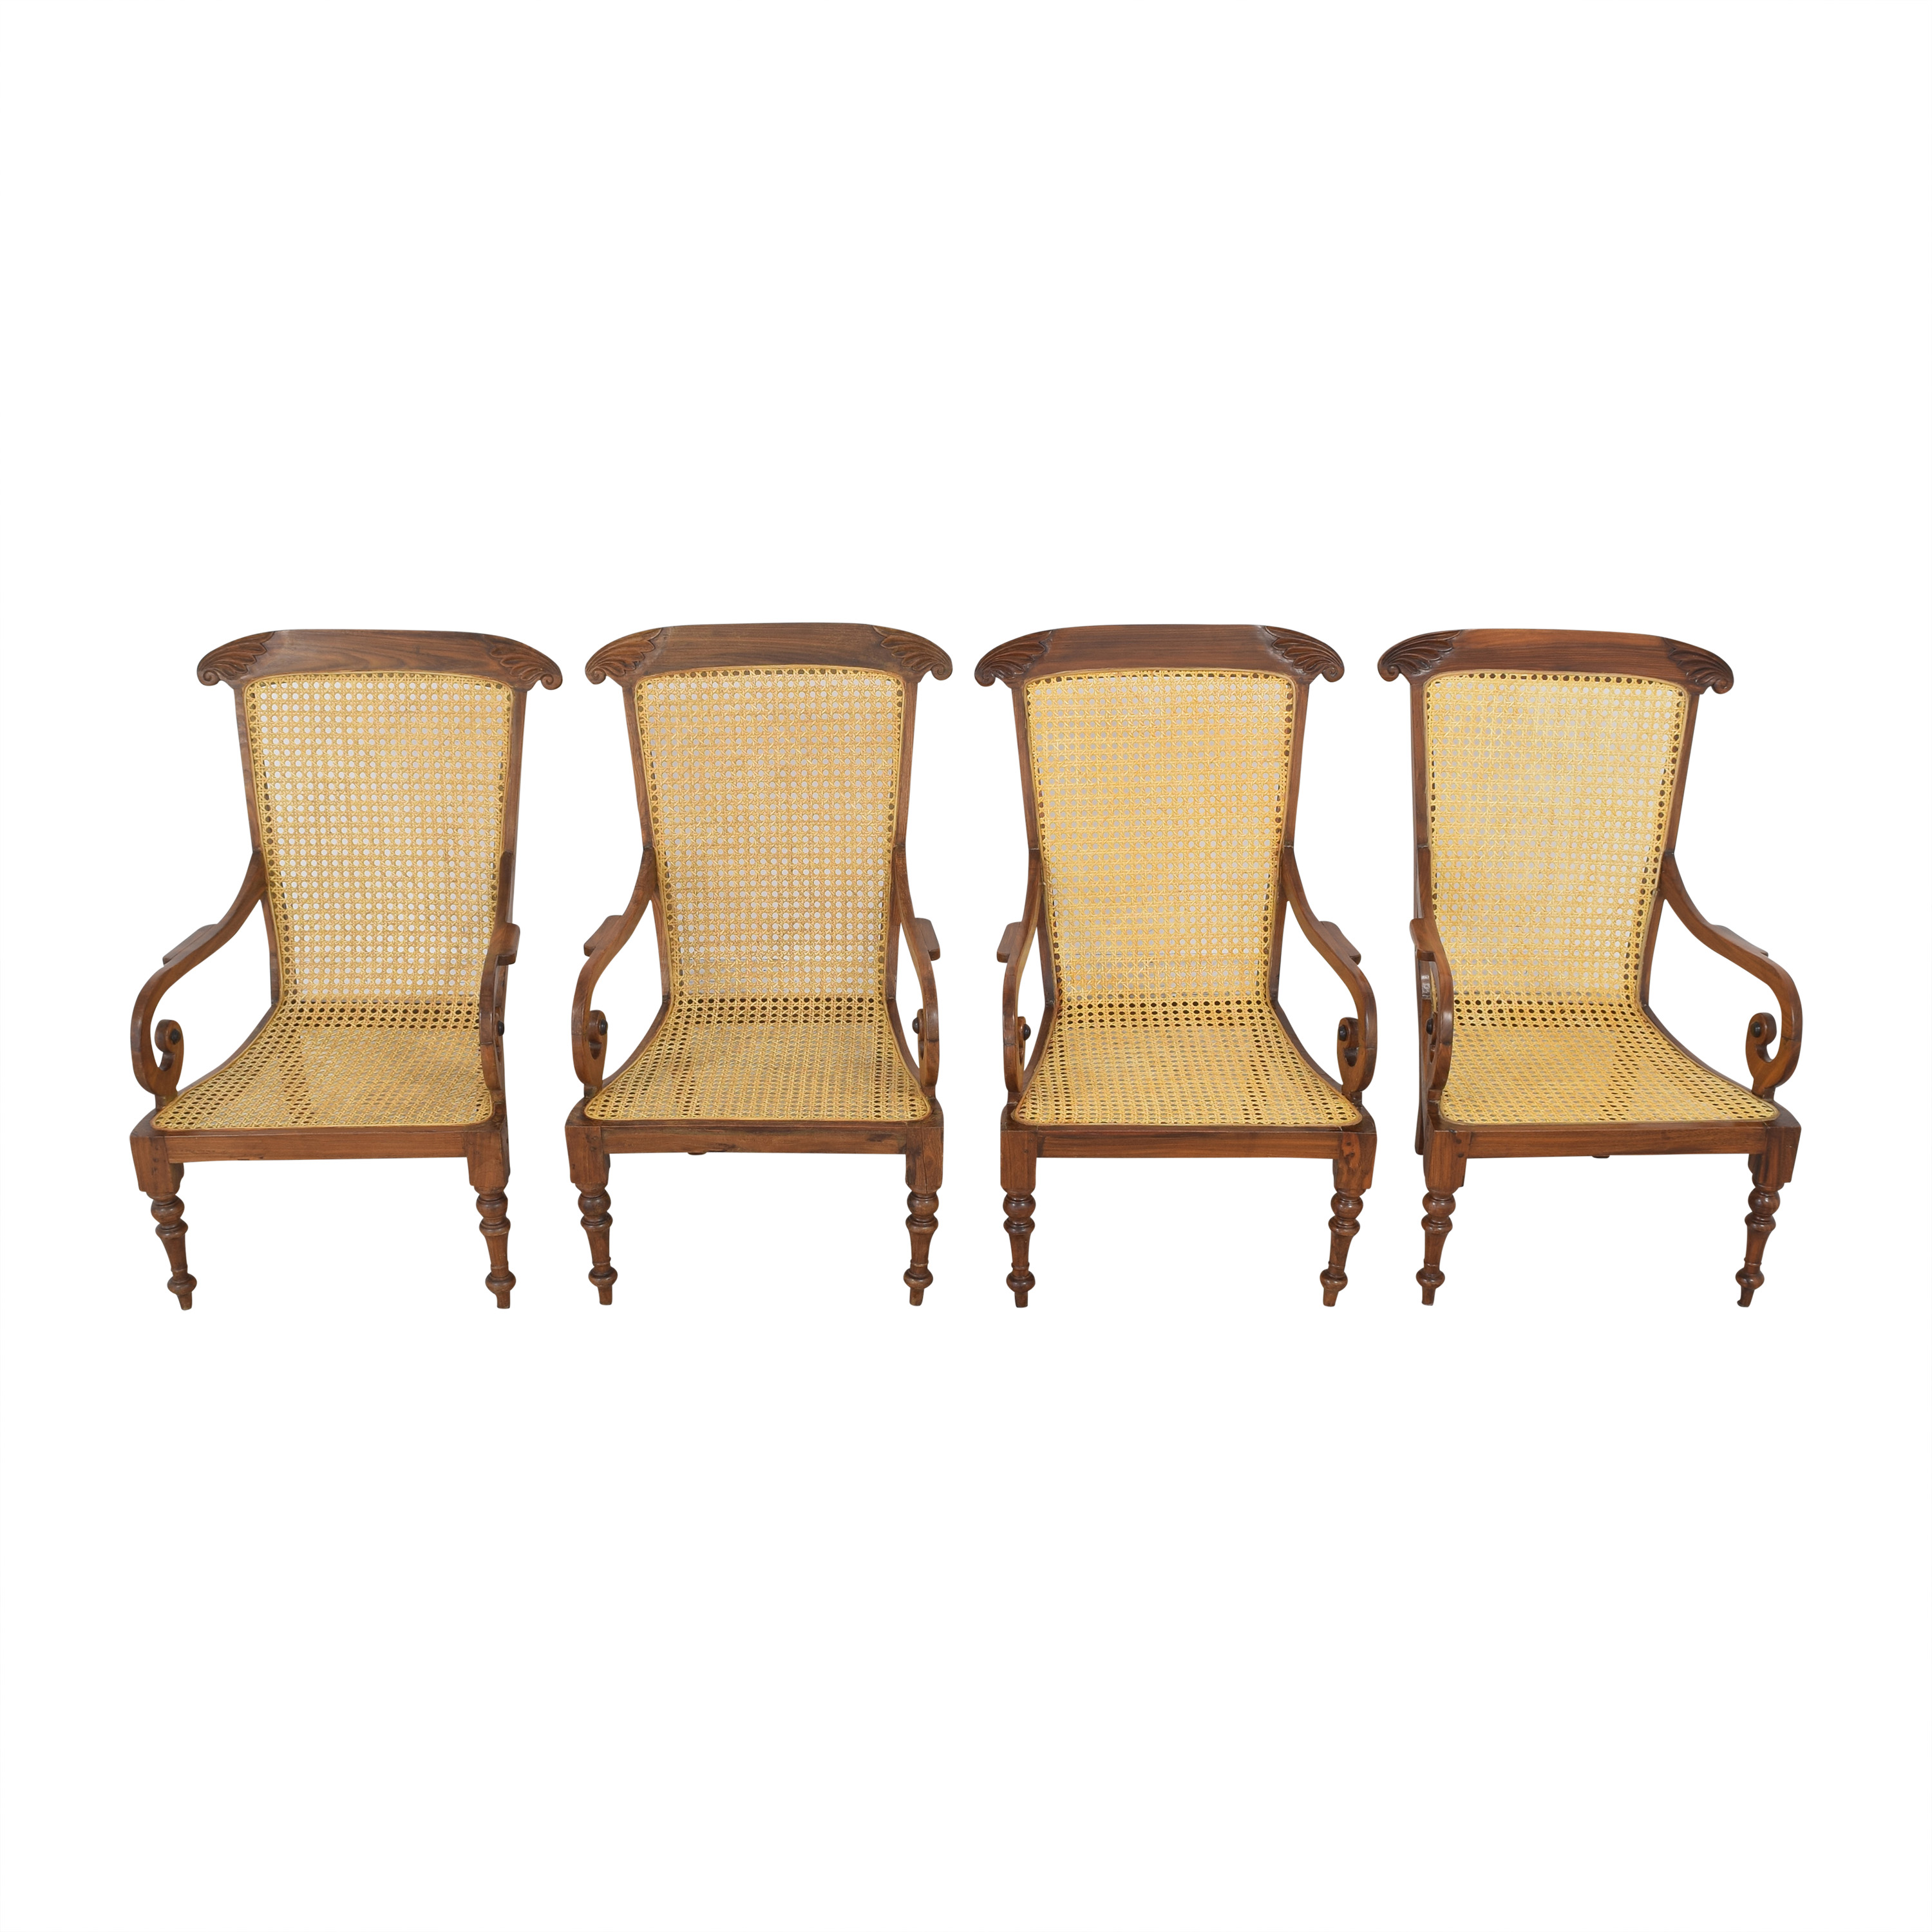 Vintage Carved Colonial-Style Chairs nj